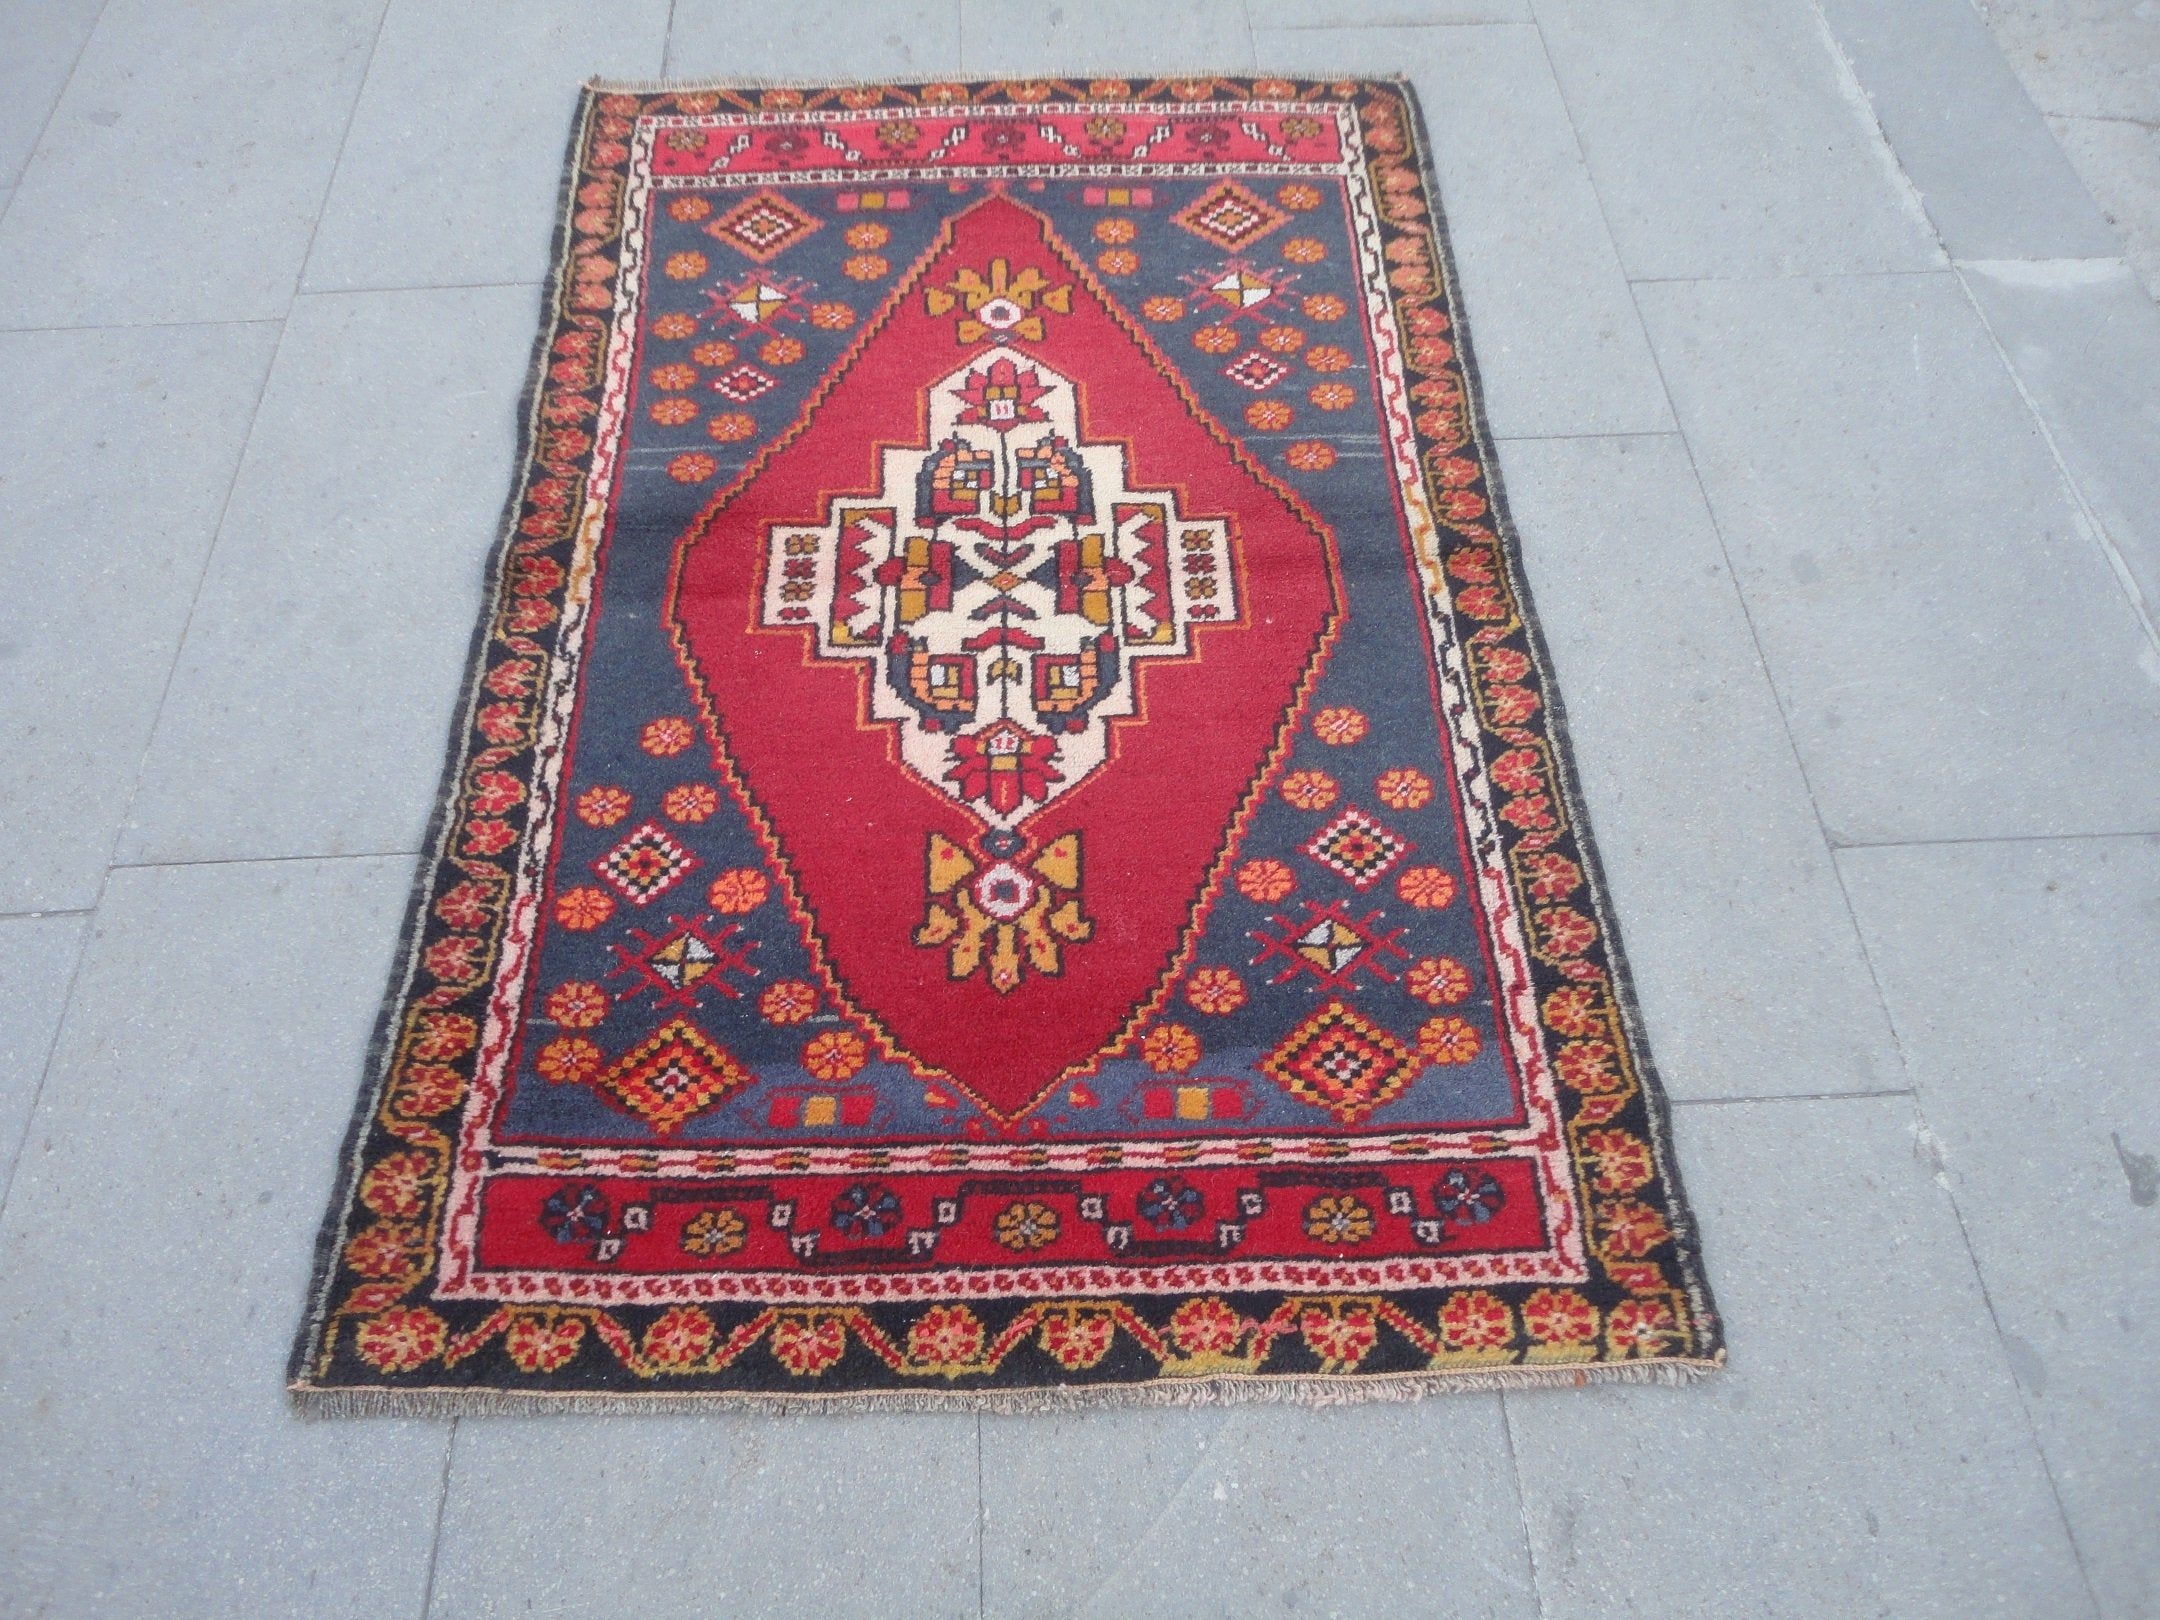 Turkish Blue Geometric Rug Hand Knotted Wool Floor Carpet High Pile Red Rug Small Size Home Office Boho Wool Rug 4 1 X 2 7 Feet Degil Halilar Hali Kilim